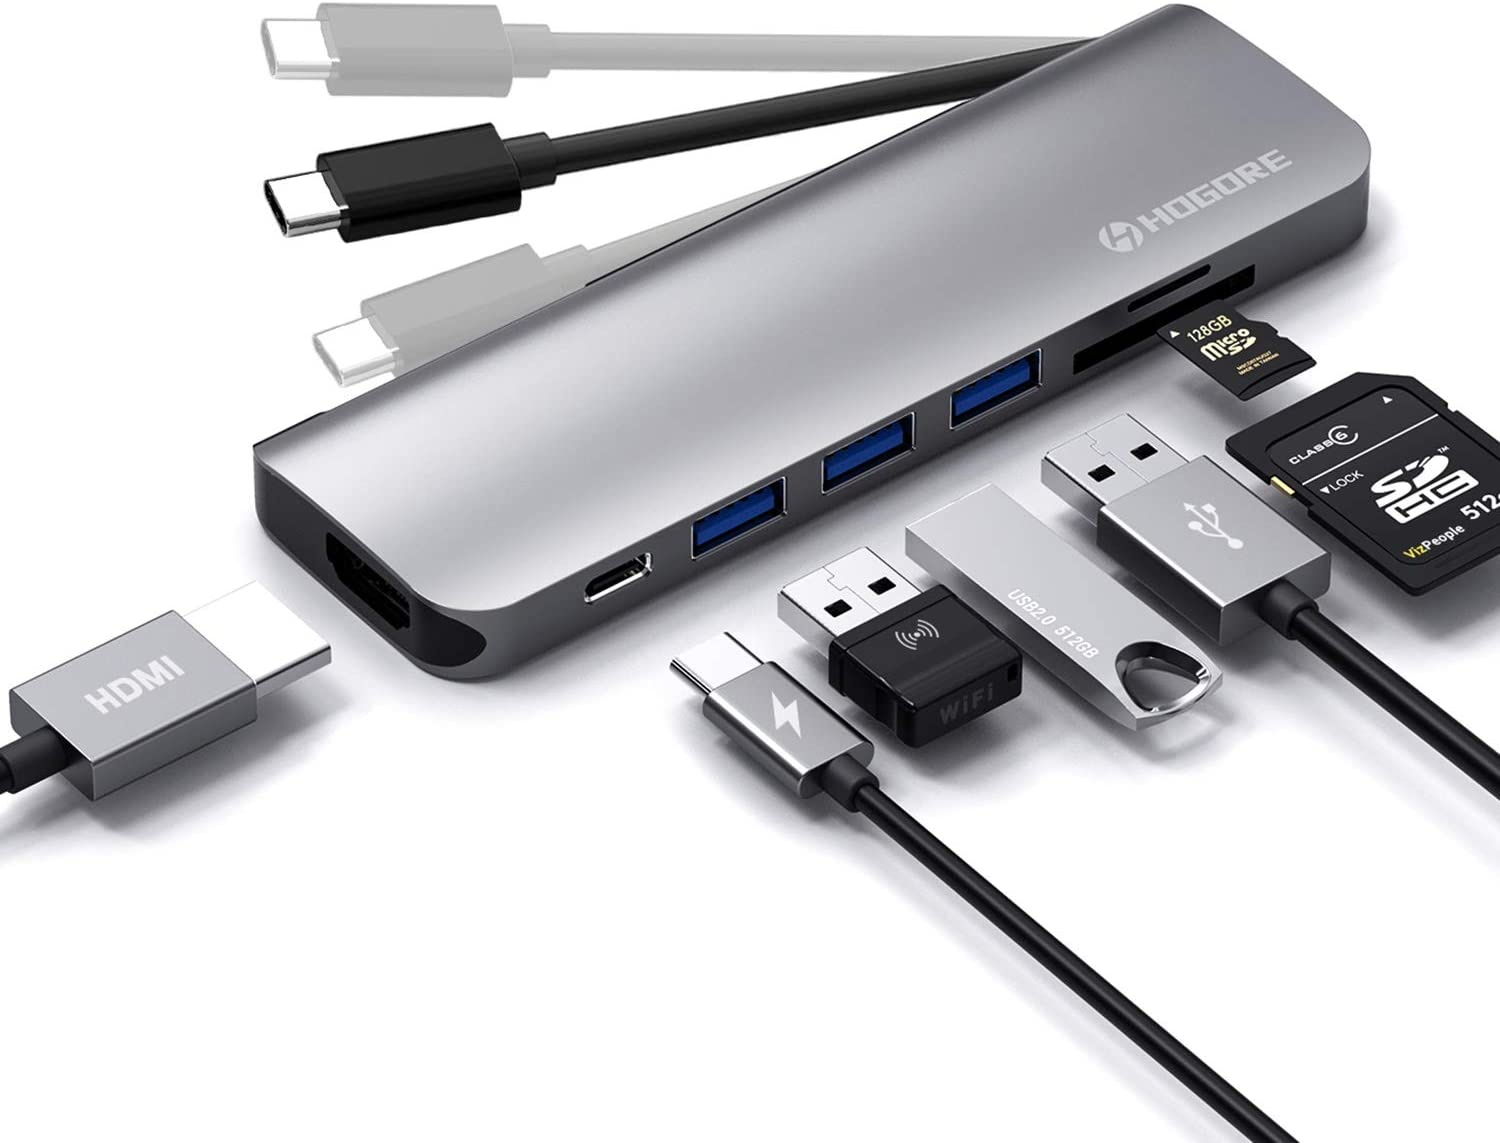 USB C Hub Adapter, HOGORE 7-in-1 Travel Type C Hub with 4K USB C to HDMI, PD Charging, USB3.0, SD/TF Reader, Compatible with MacBook Pro/Air,HP Spectre,Dell XPS,Galaxy S20/S10,Surface Pro X